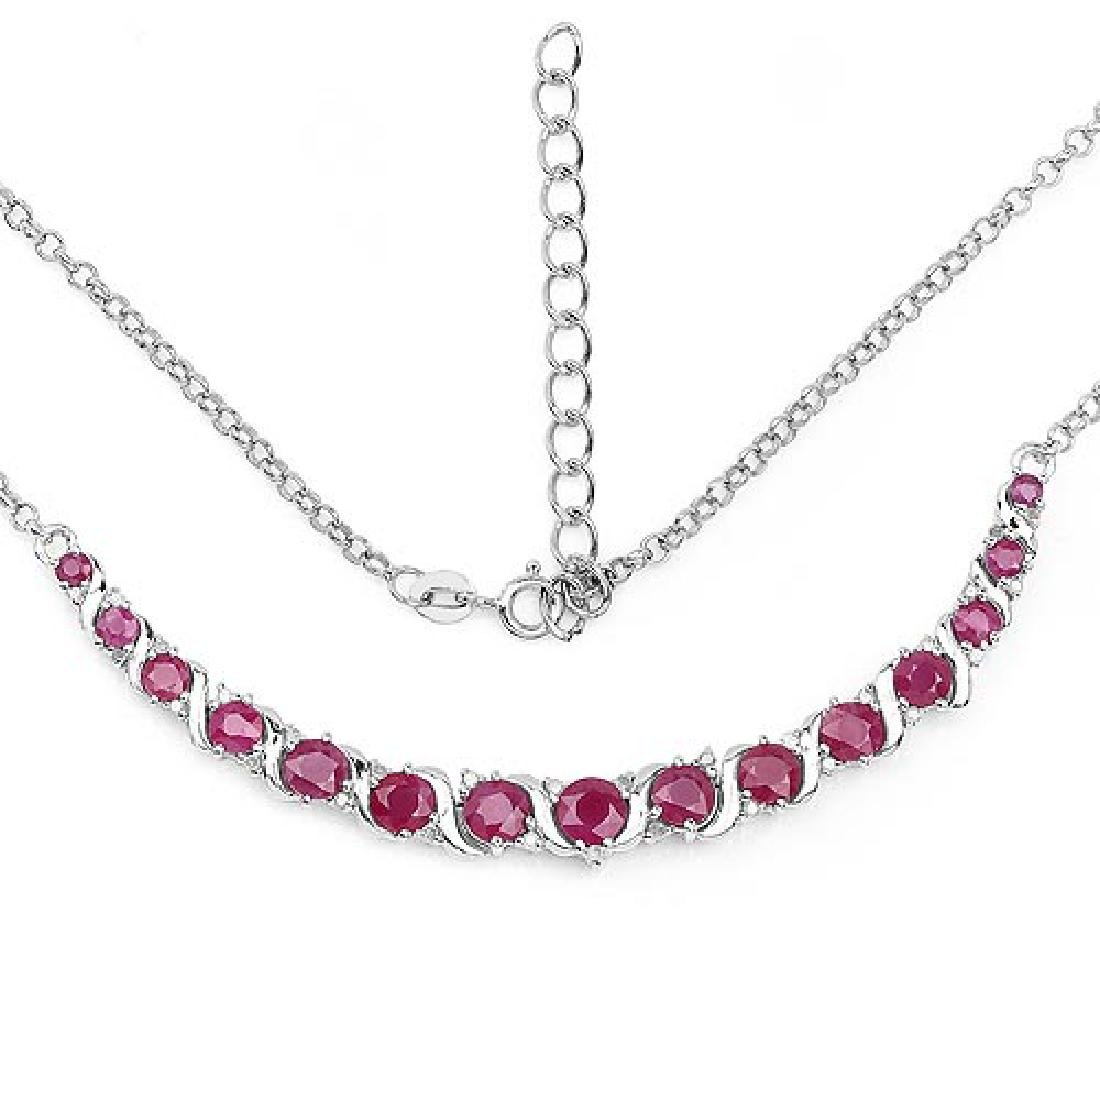 5.09 Carat Genuine Ruby and White Diamond .925 Sterling